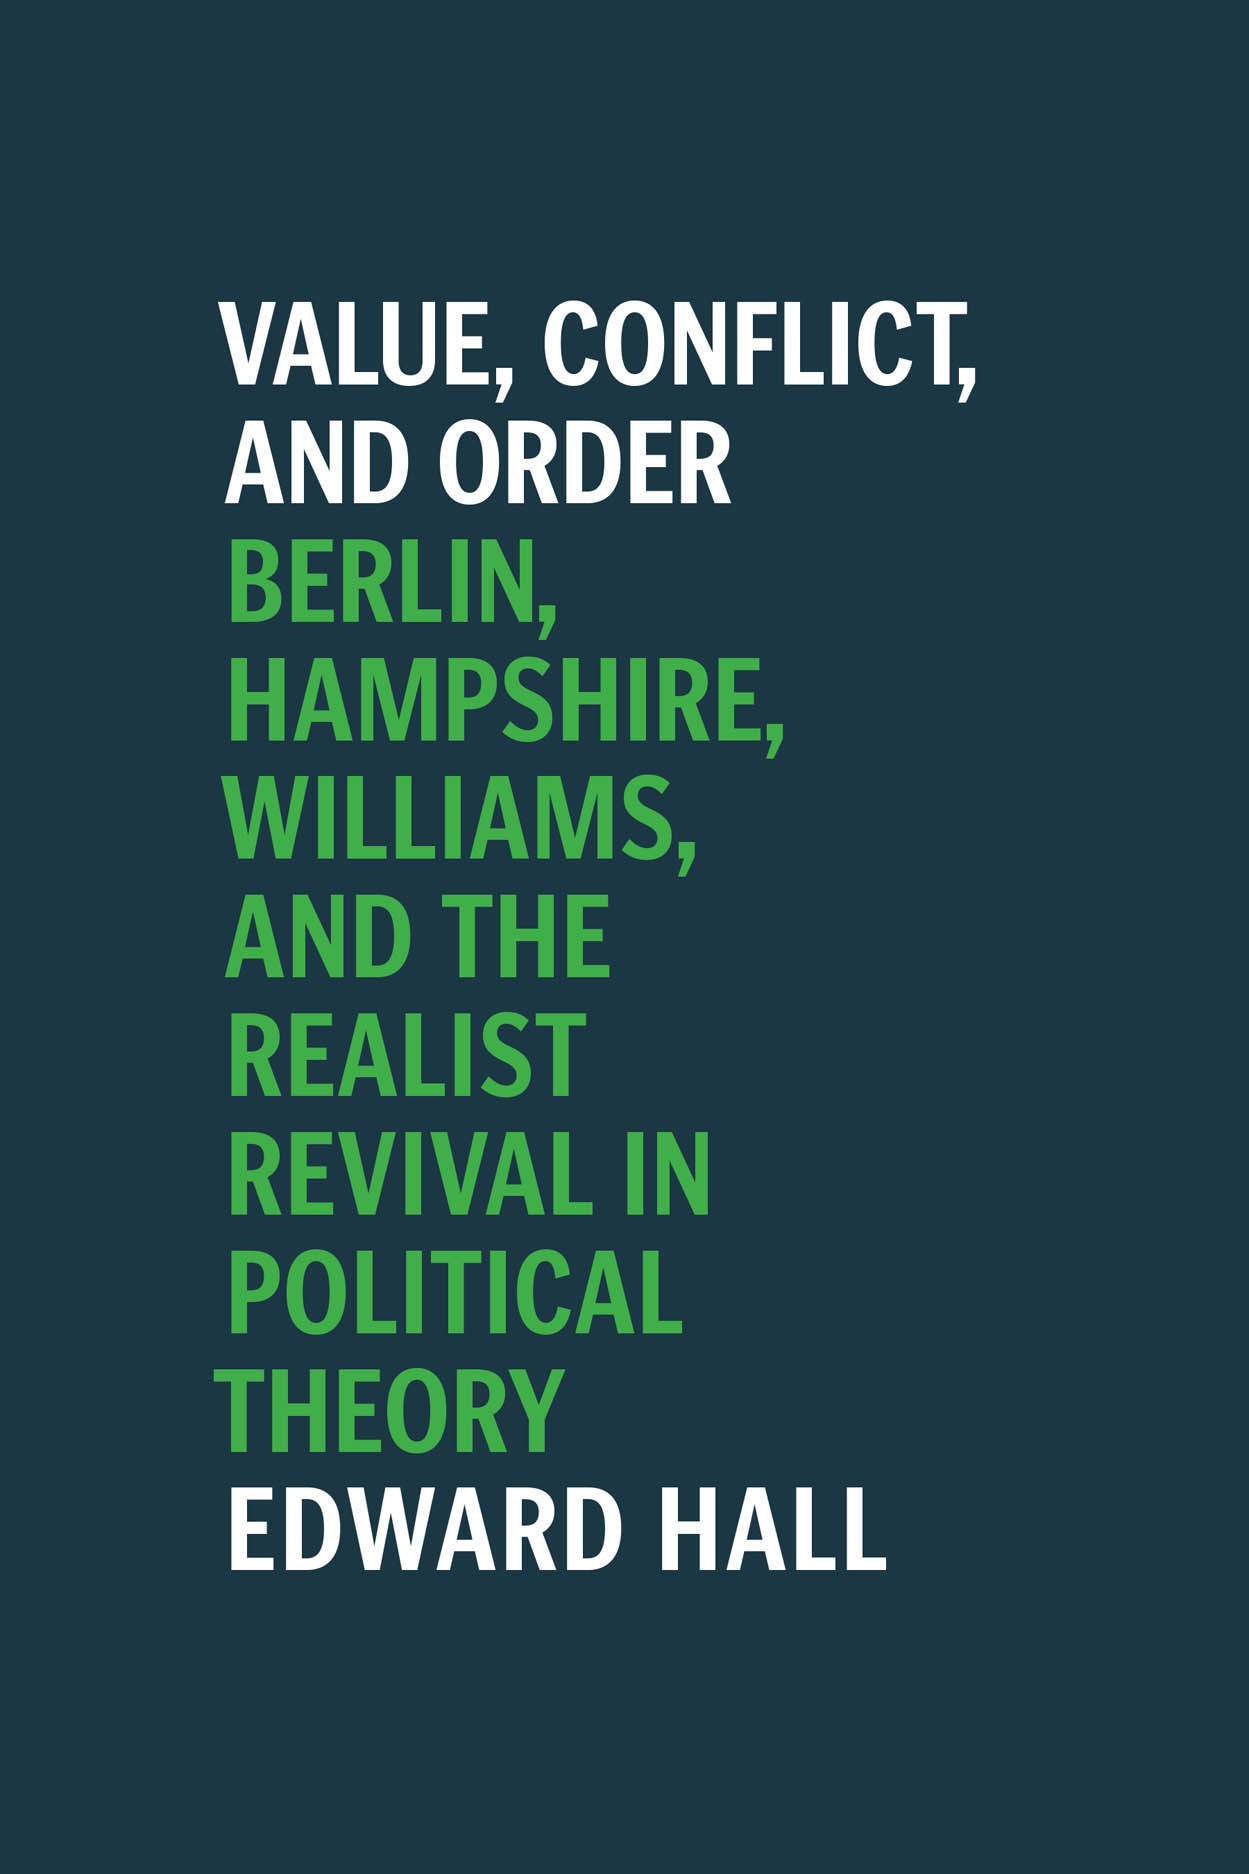 Value, Conflict, and Order: Berlin, Hampshire, Williams, and the Realist Revival in Political Theory